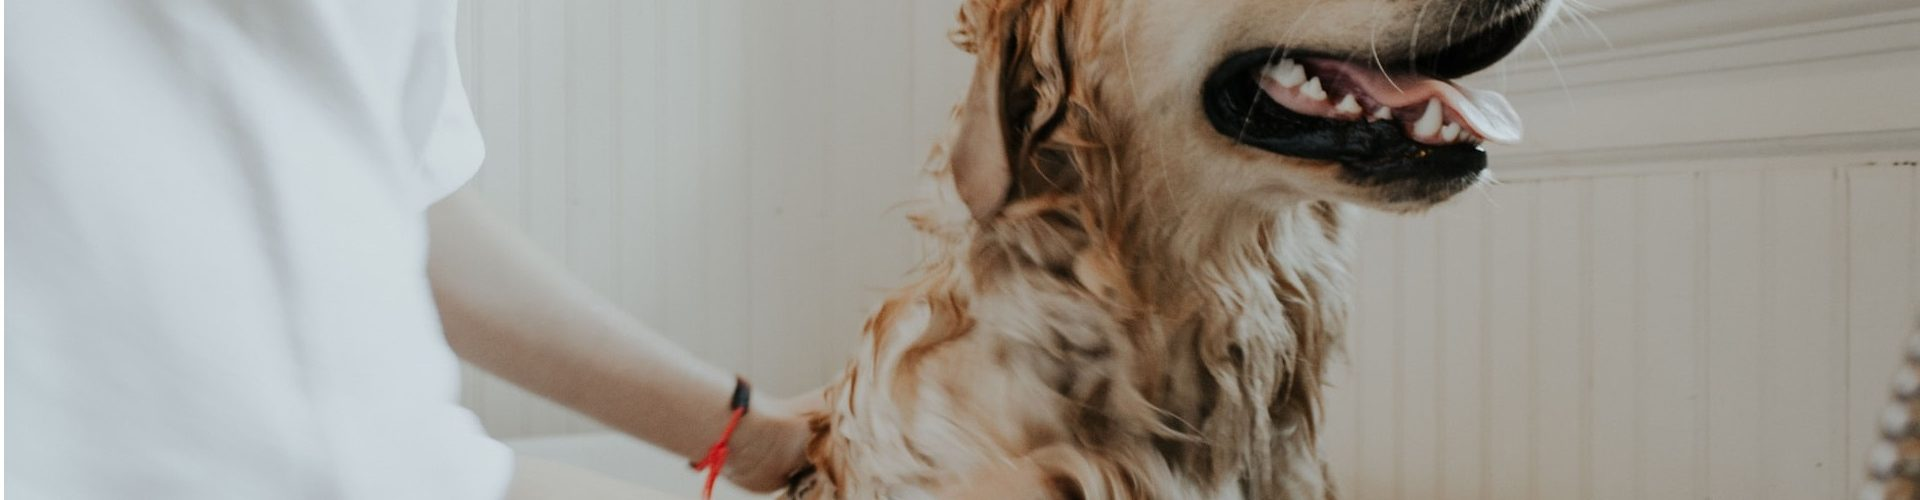 How to Control Pet Hair in Your Home